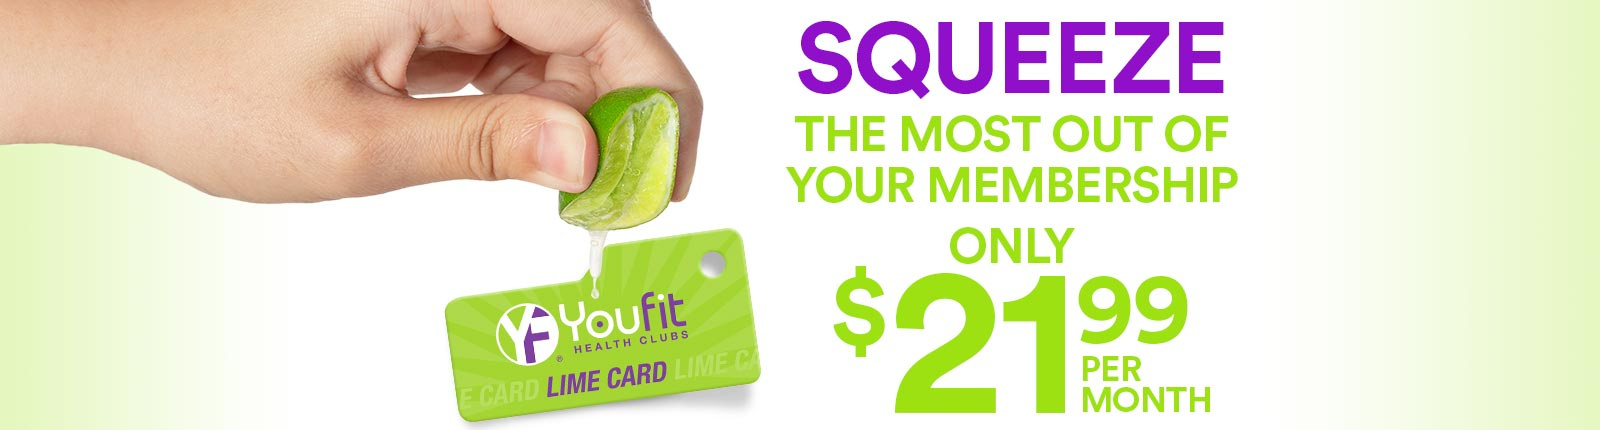 Squeeze the most out of your membership - only $21.99 per month